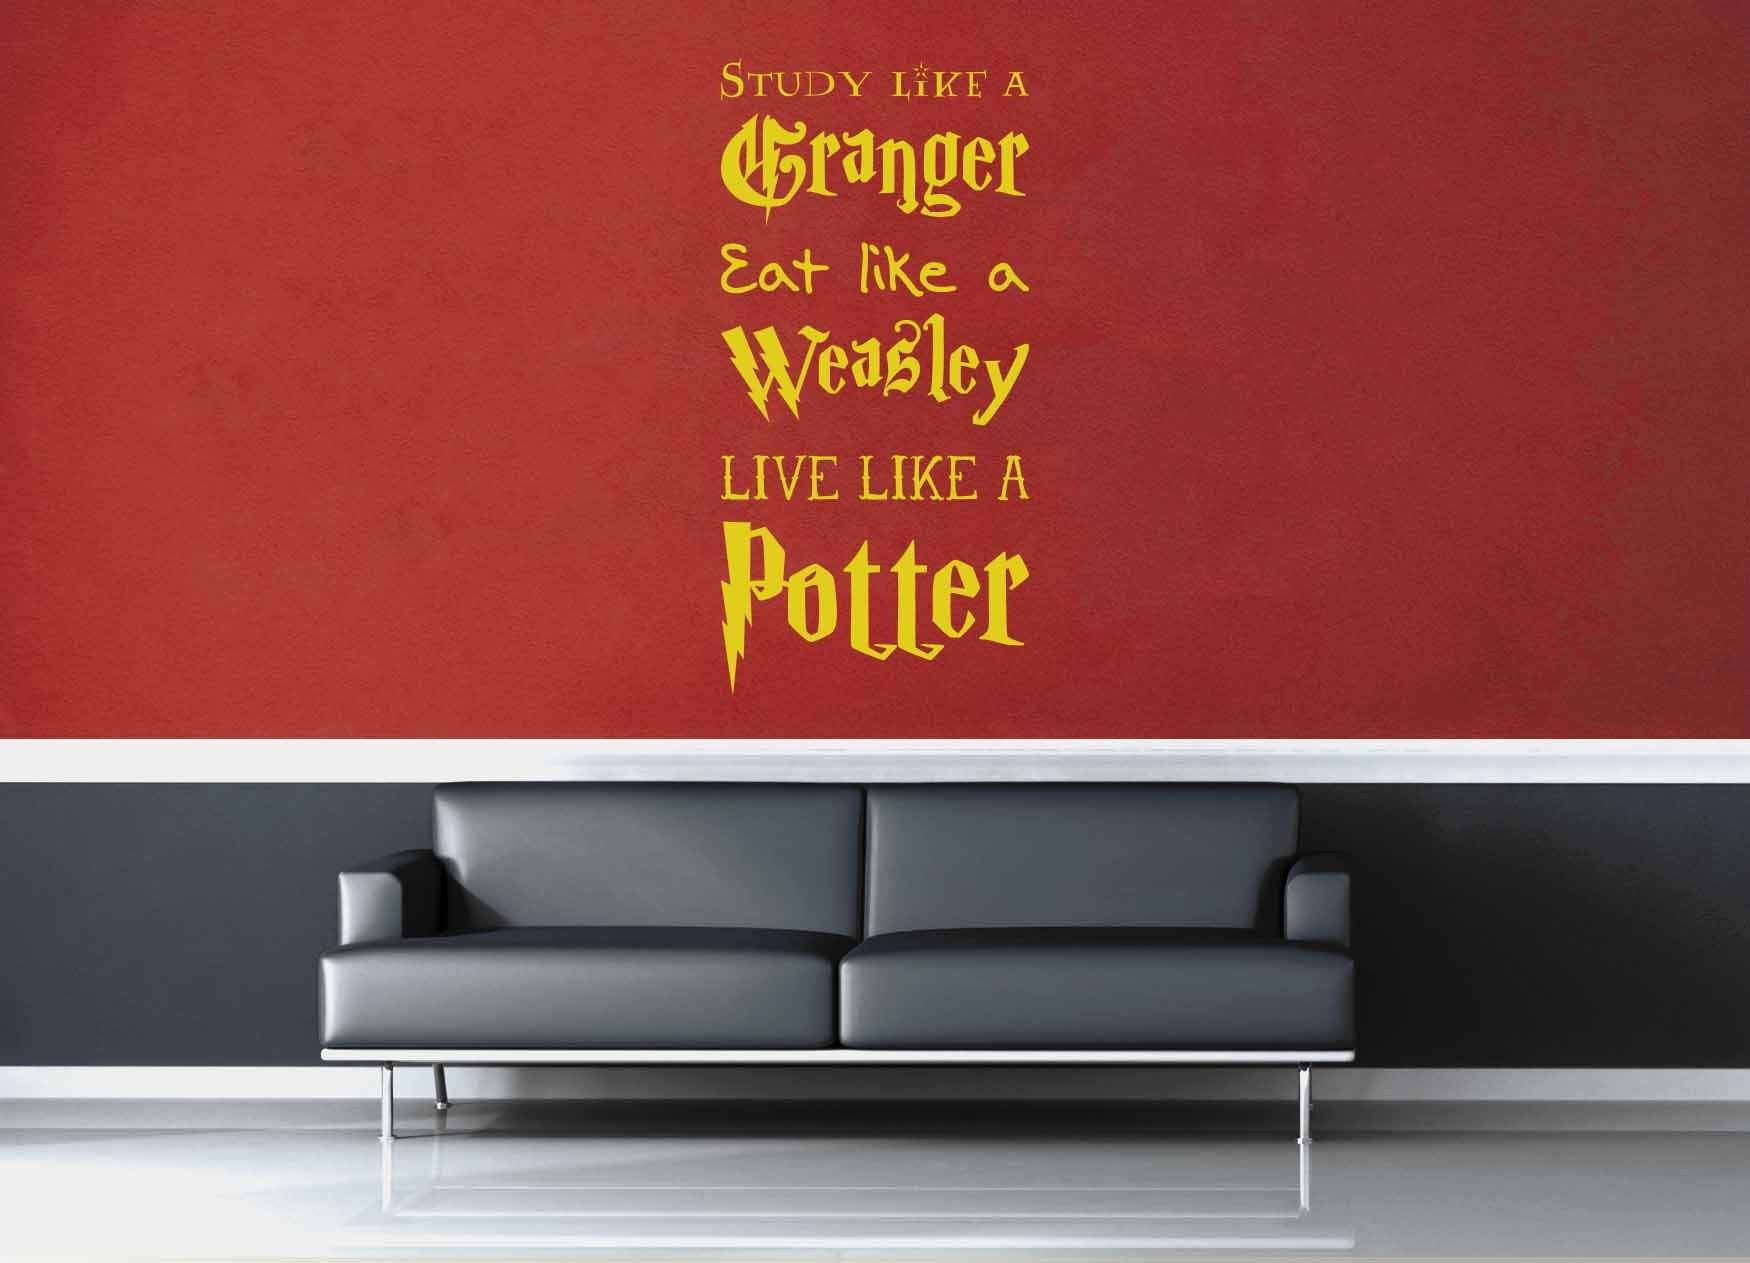 Live Like a Potter - Harry Potter Quote - Wall Decal